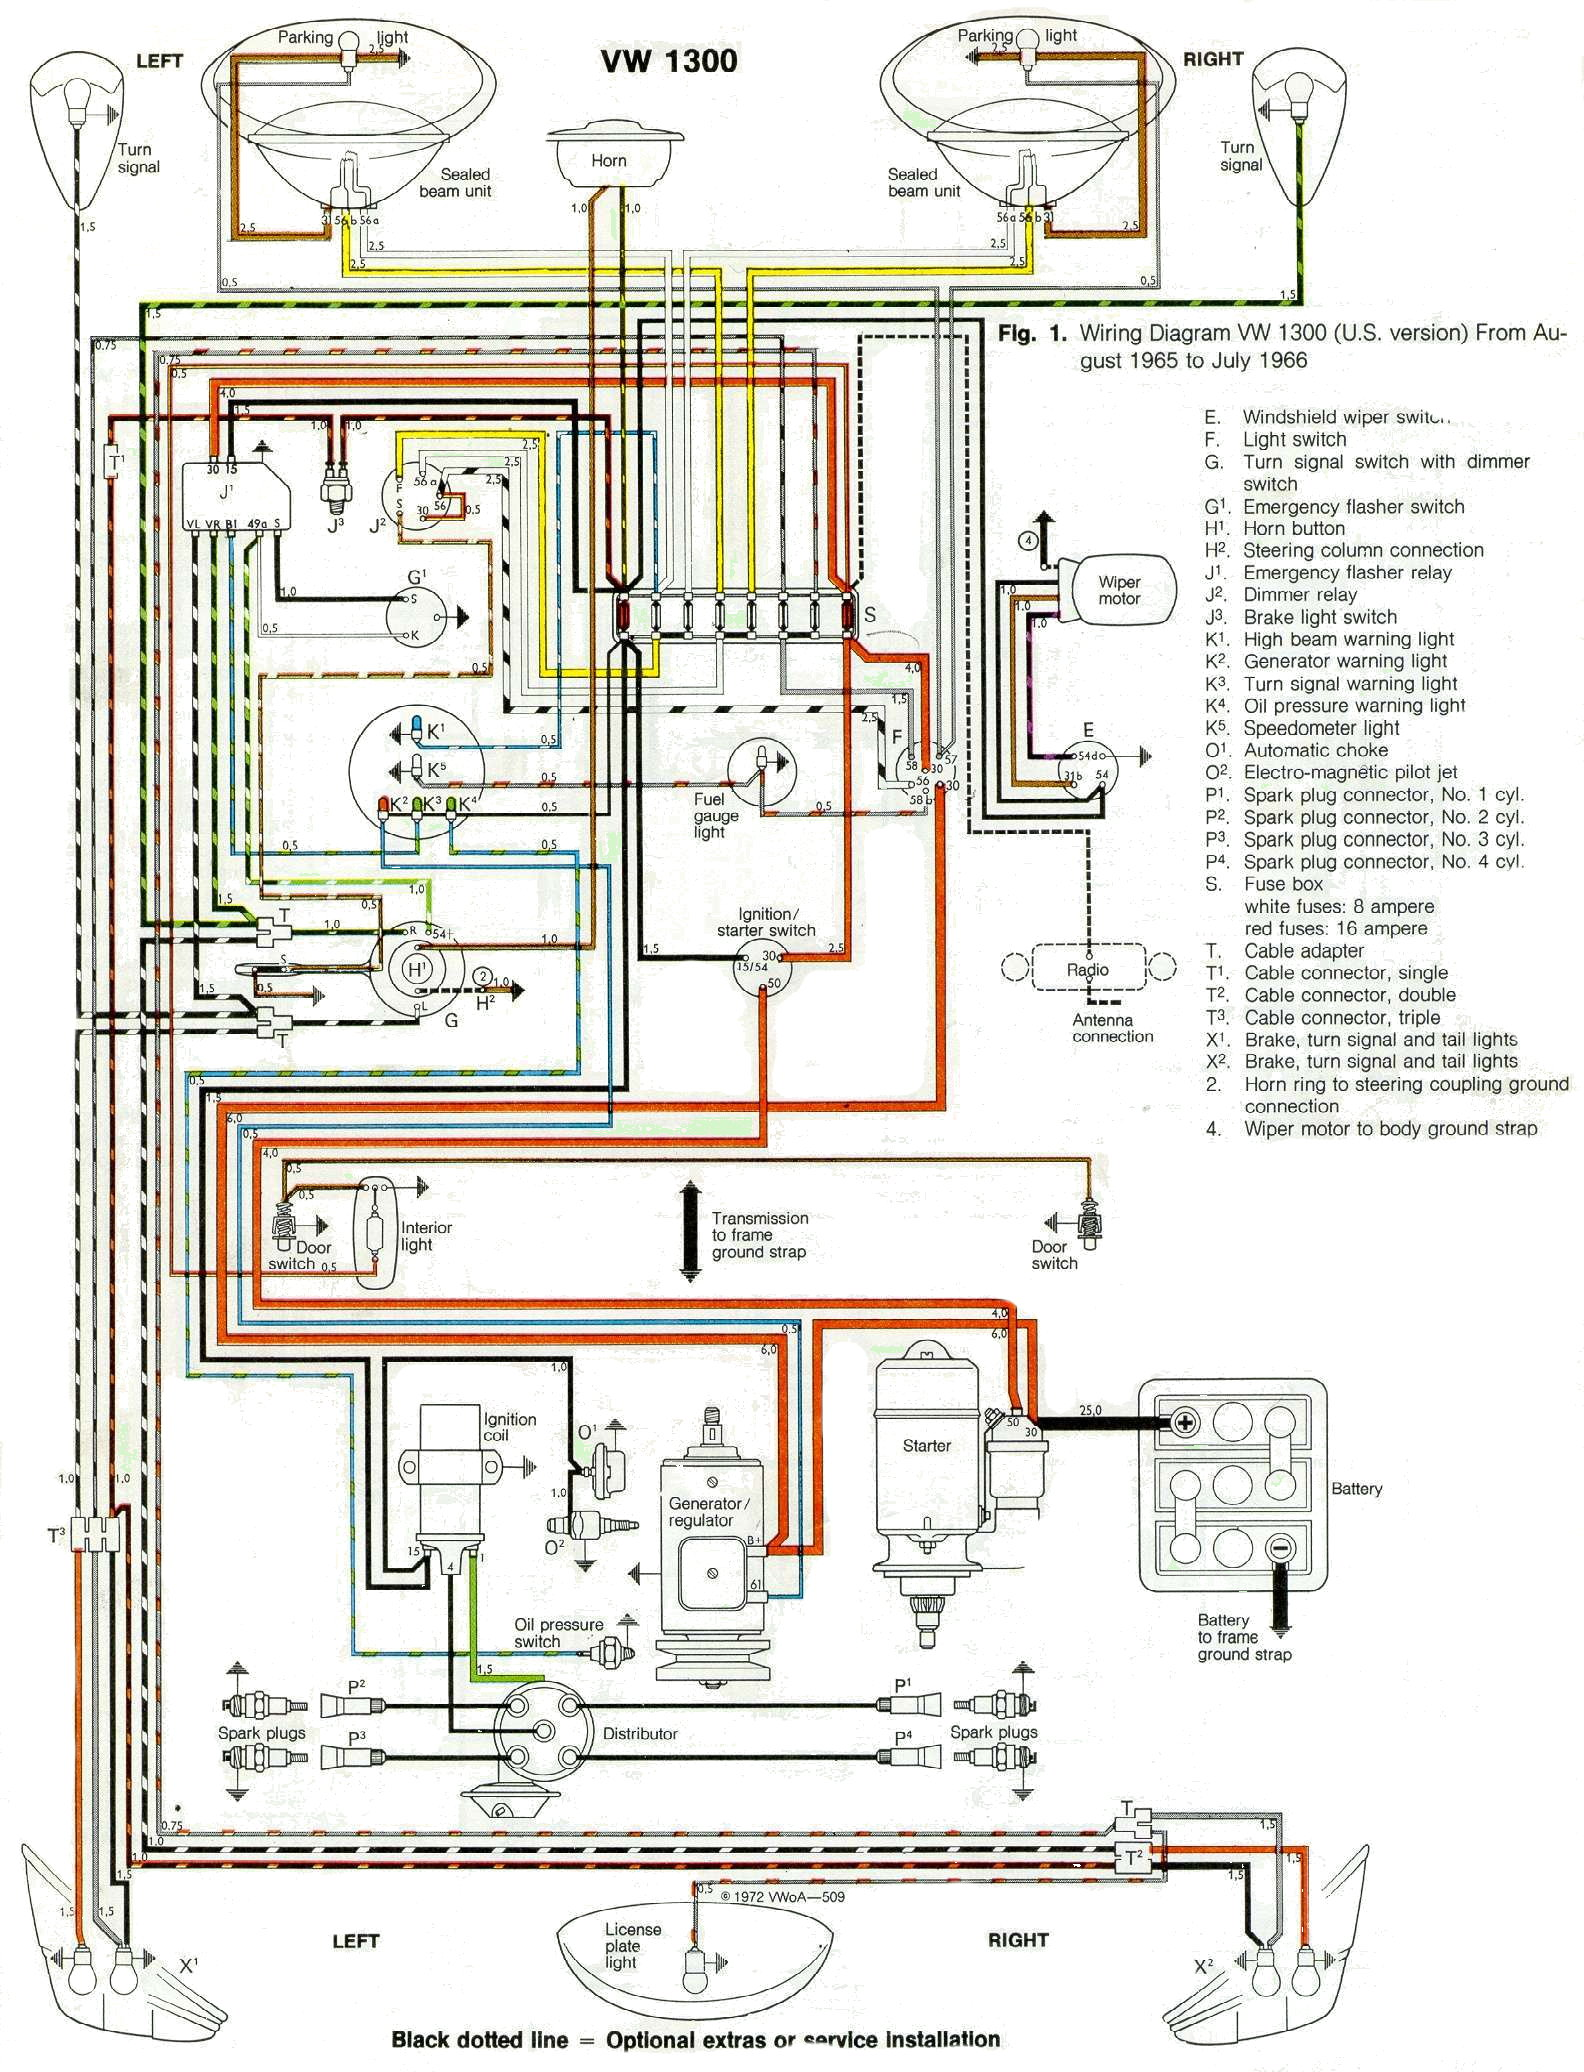 1966 wiring diagram rh 1966vwbeetle com 66 VW Seats Diagram 66 VW Beetle Engine Diagram